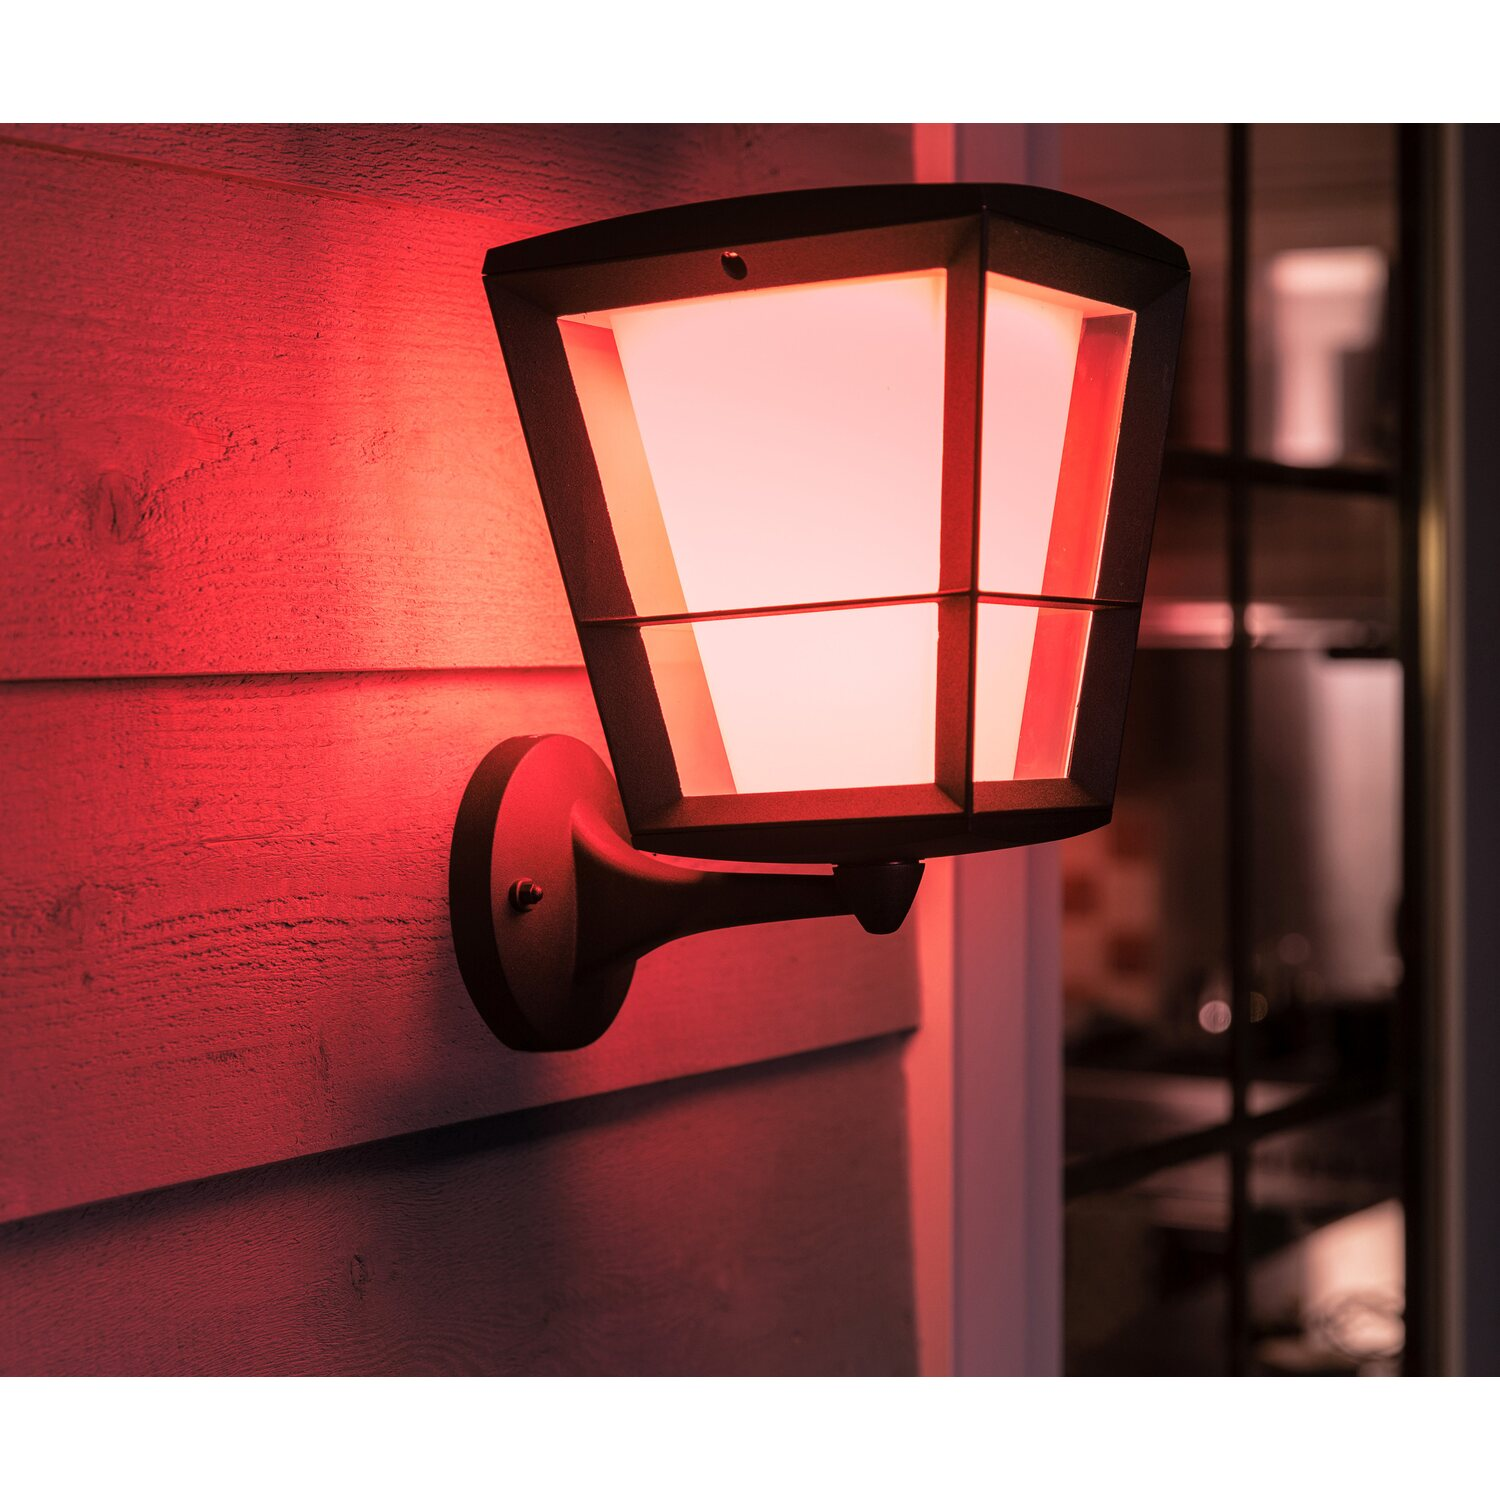 Philips Hue White & Color Amb. Econic LED-Laternenleuchte stehend EEK: A